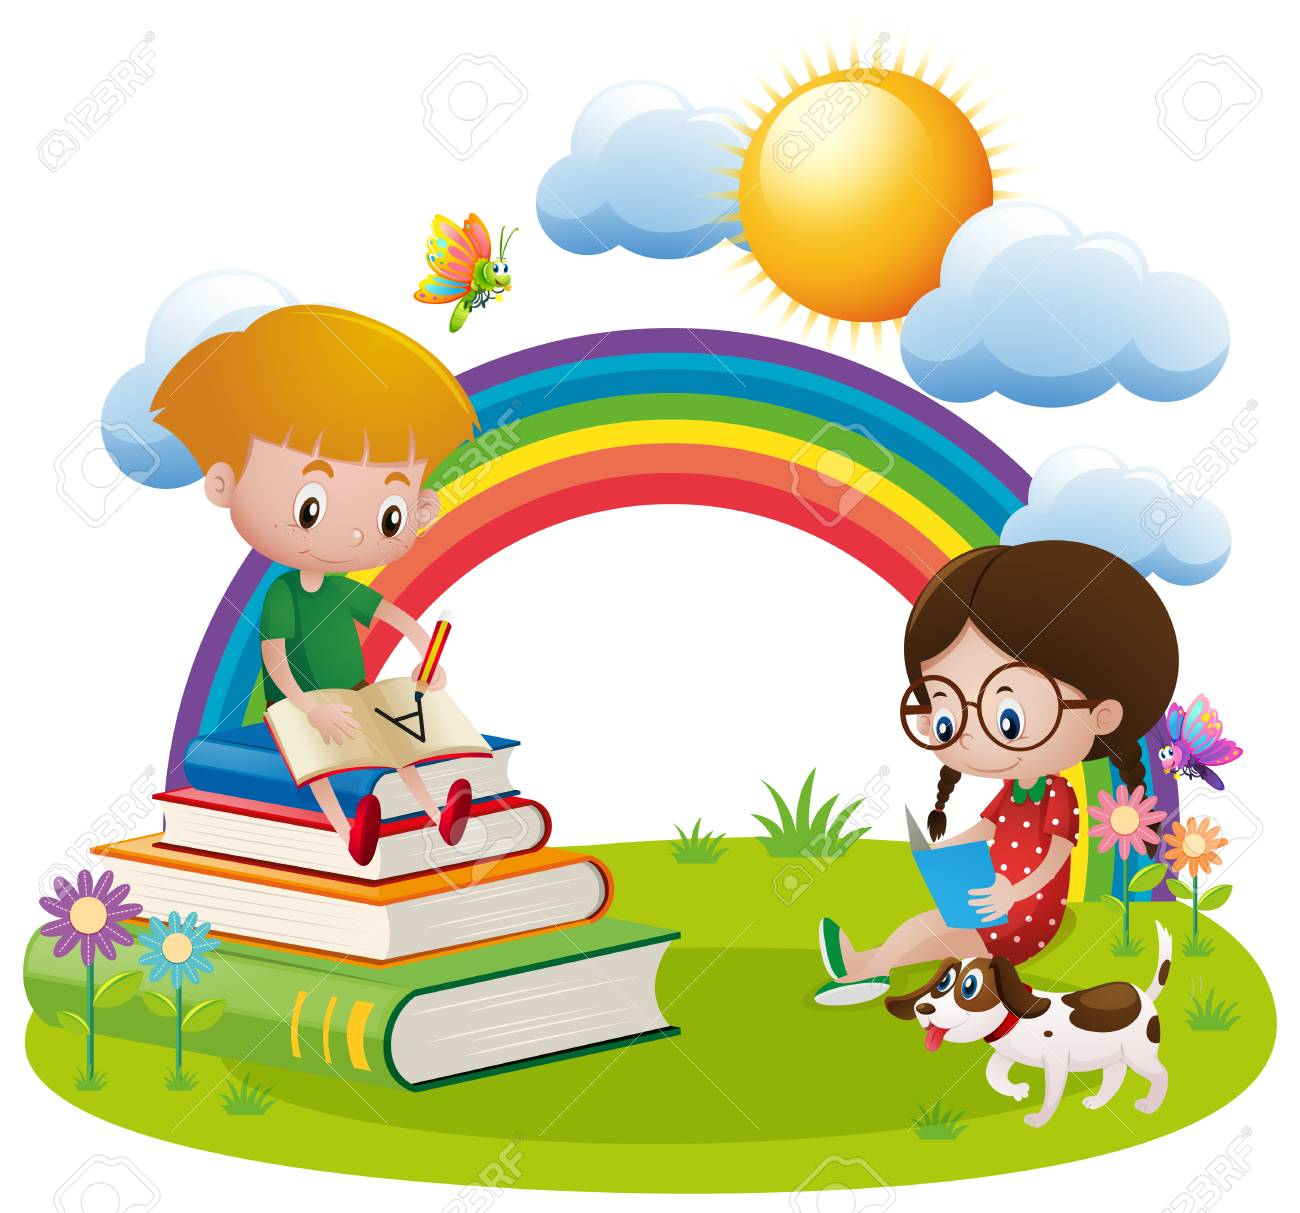 two kids reading and writing in garden illustration royalty free